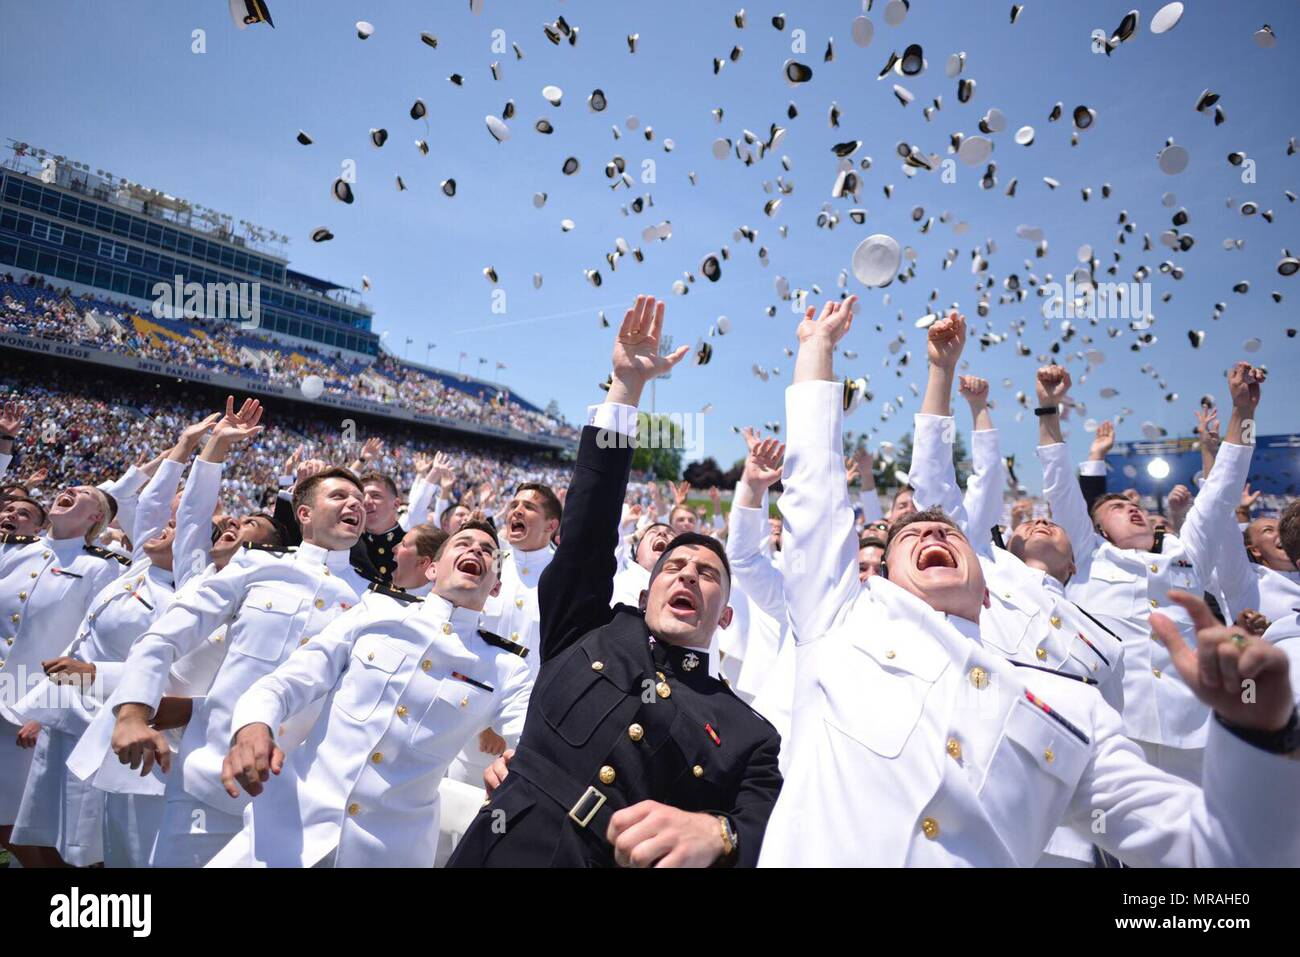 U.S. Naval Academy graduates toss their hats into the air during the annual tradition marking their commissioning and graduation May 25, 2018 in Annapolis, Maryland. The Class of 2018 graduated 1,042 midshipmen and was addressed by President Donald Trump during the ceremony. Stock Photo